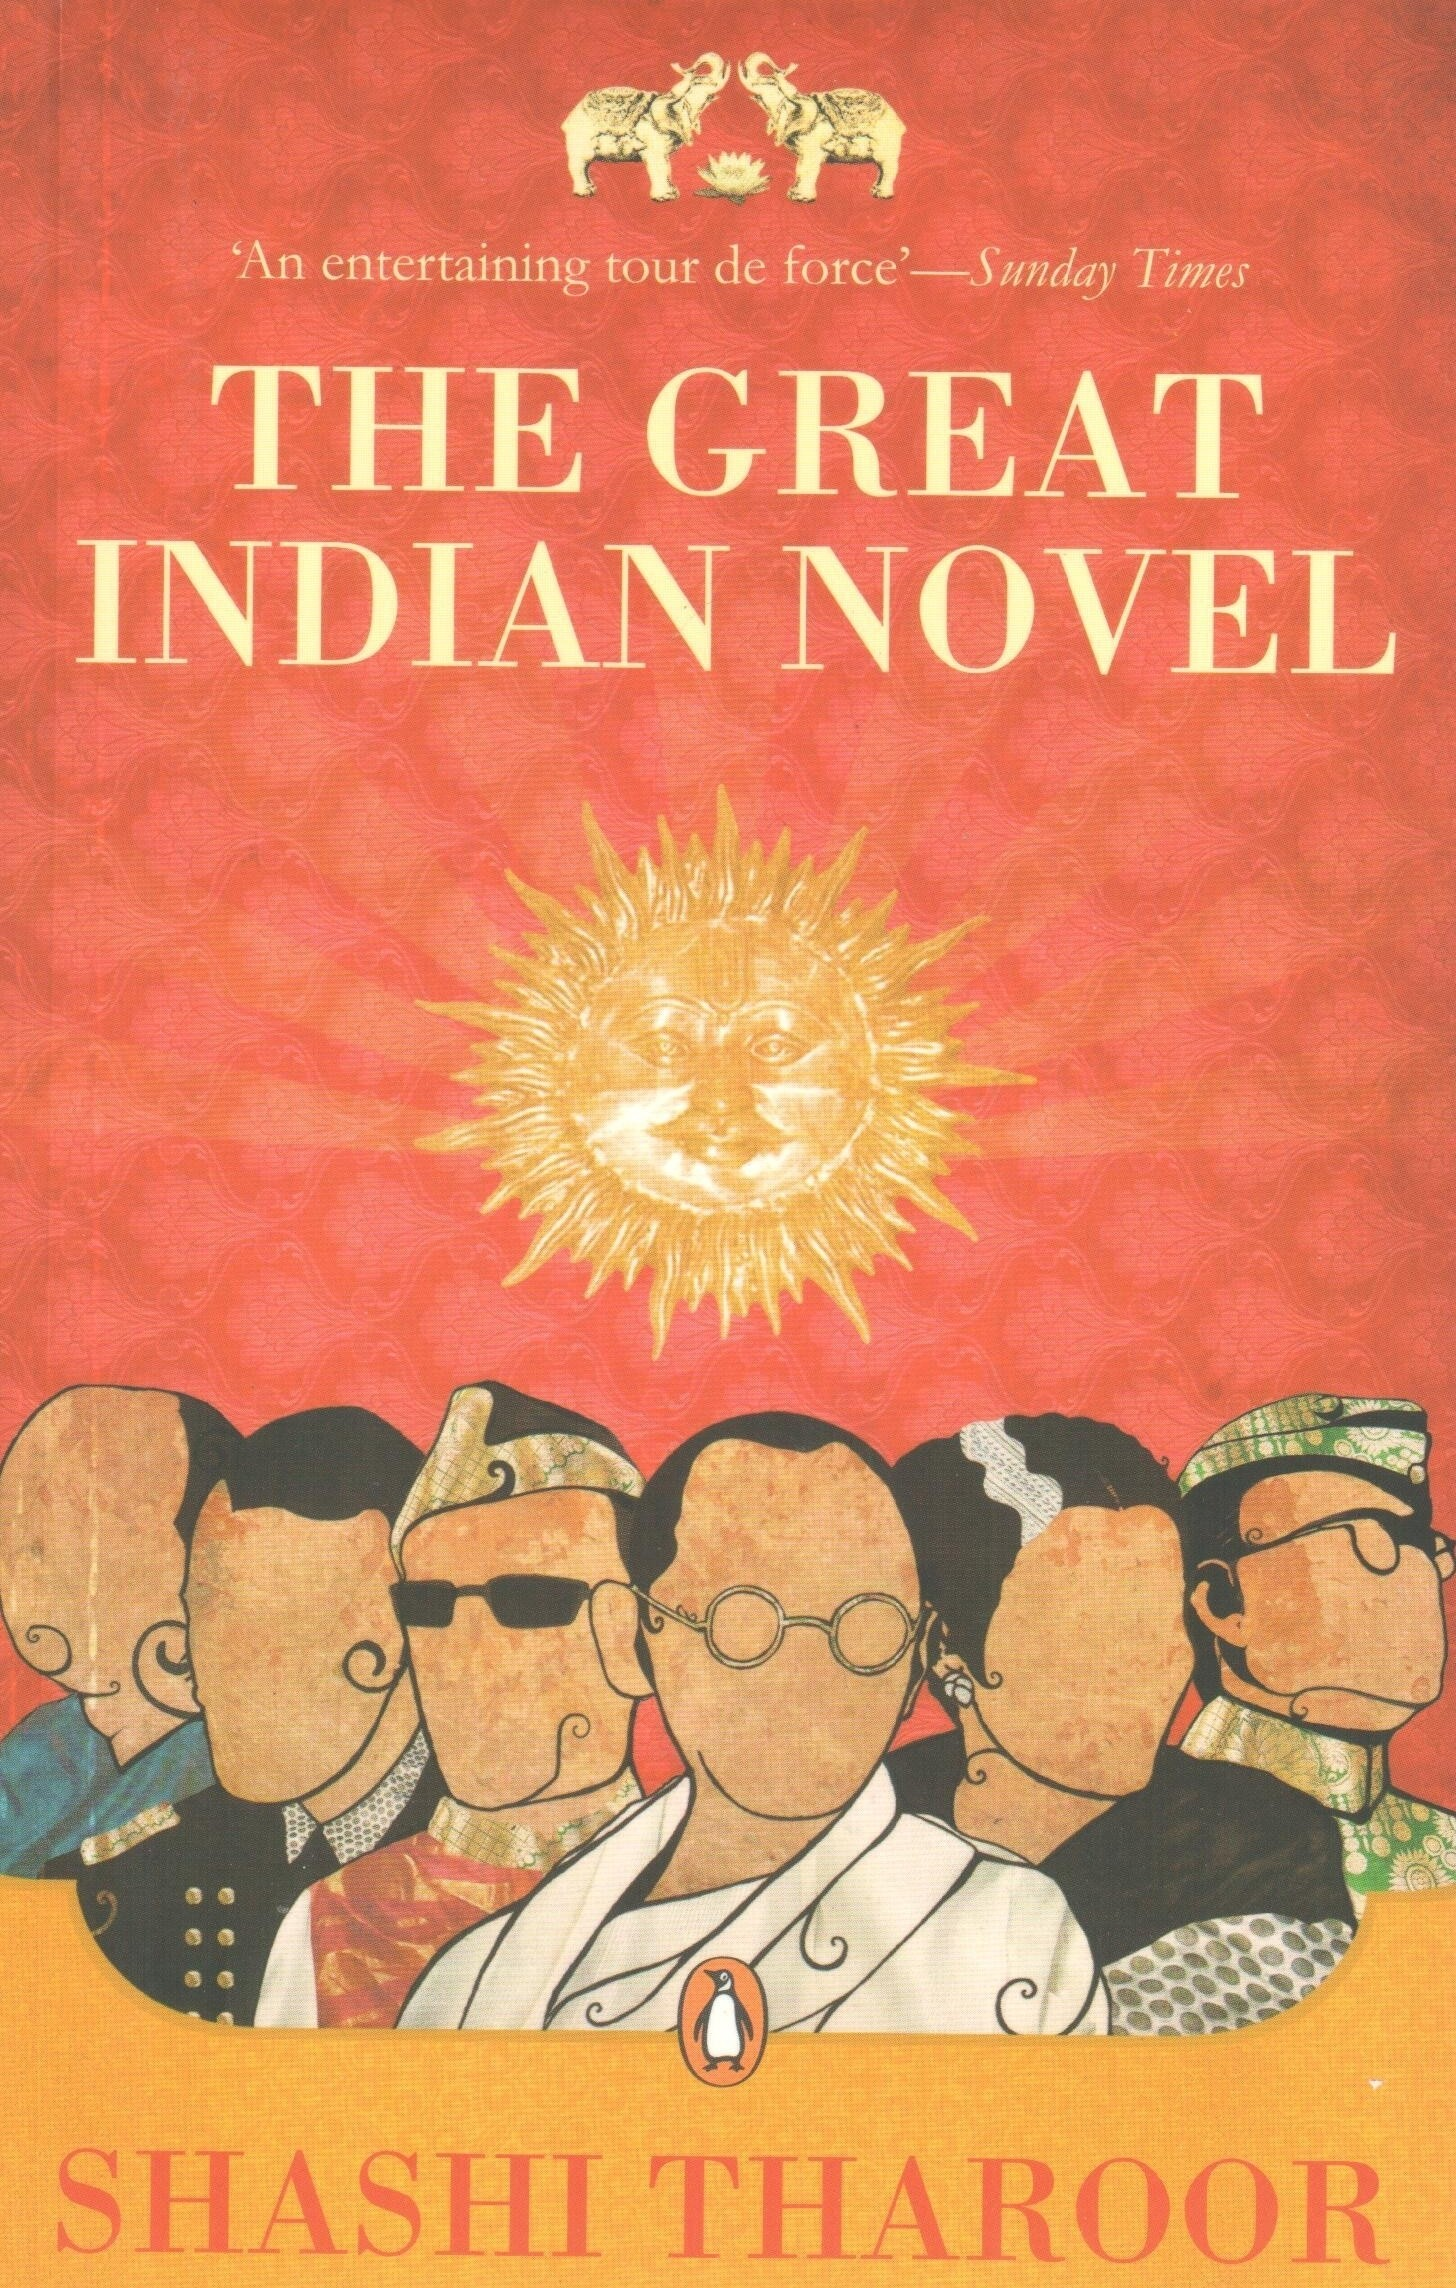 http://img5a.flixcart.com/image/book/4/9/3/the-great-indian-novel-original-imadhxkvzpqcg6kv.jpeg